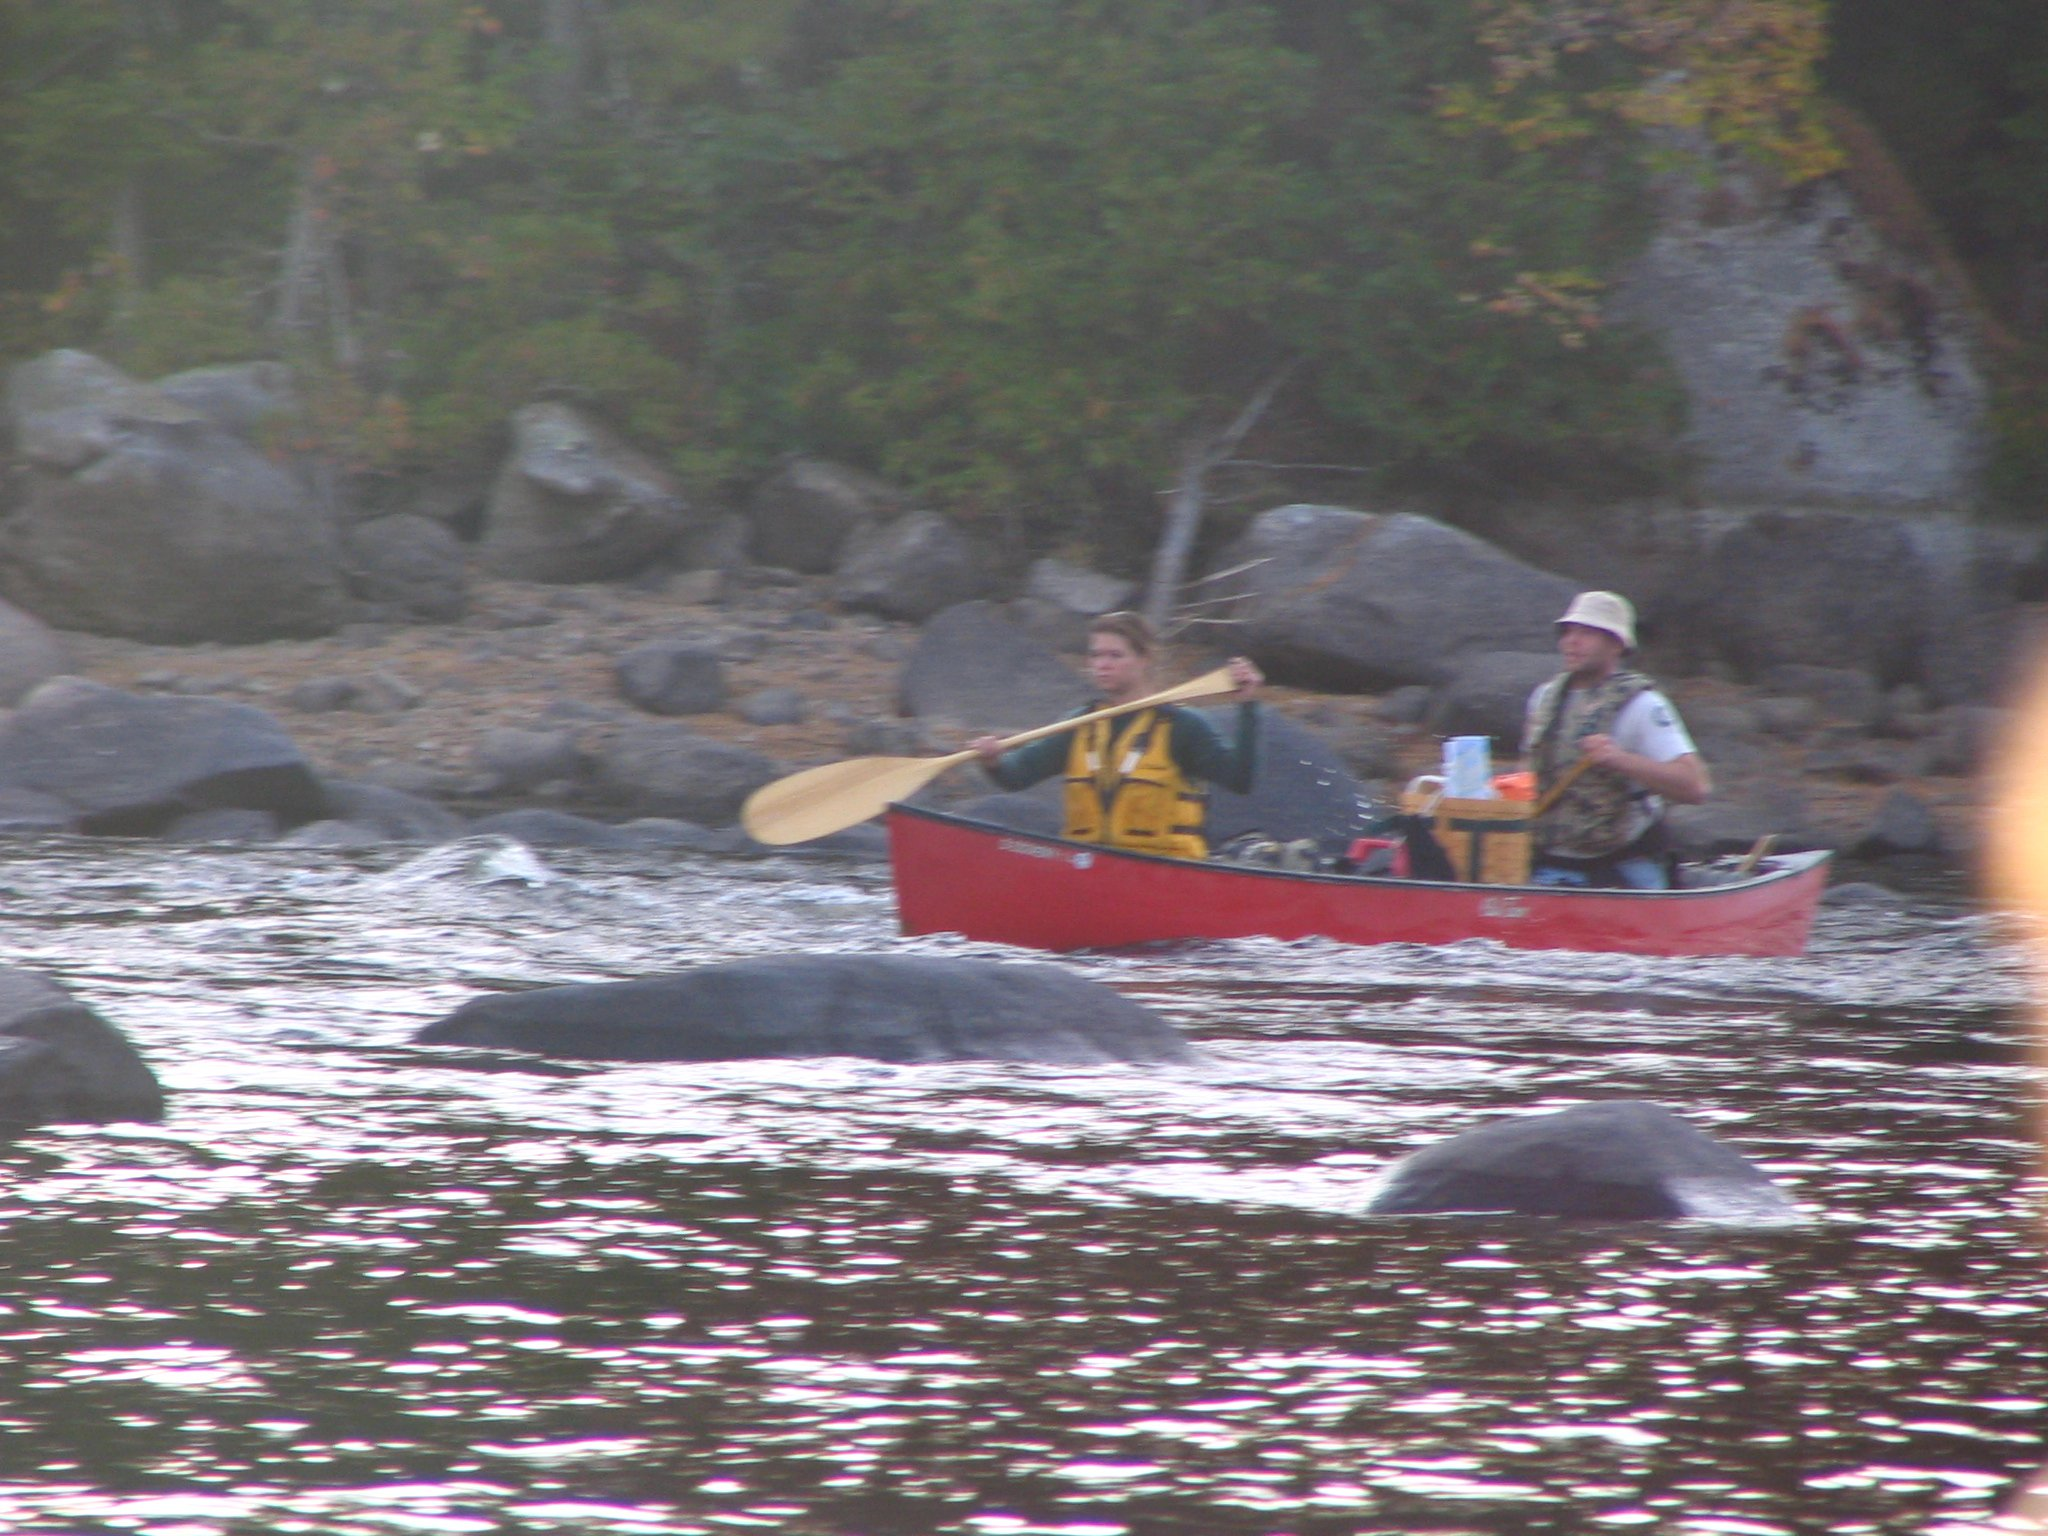 Paddling the West Branch of the Penobscot River